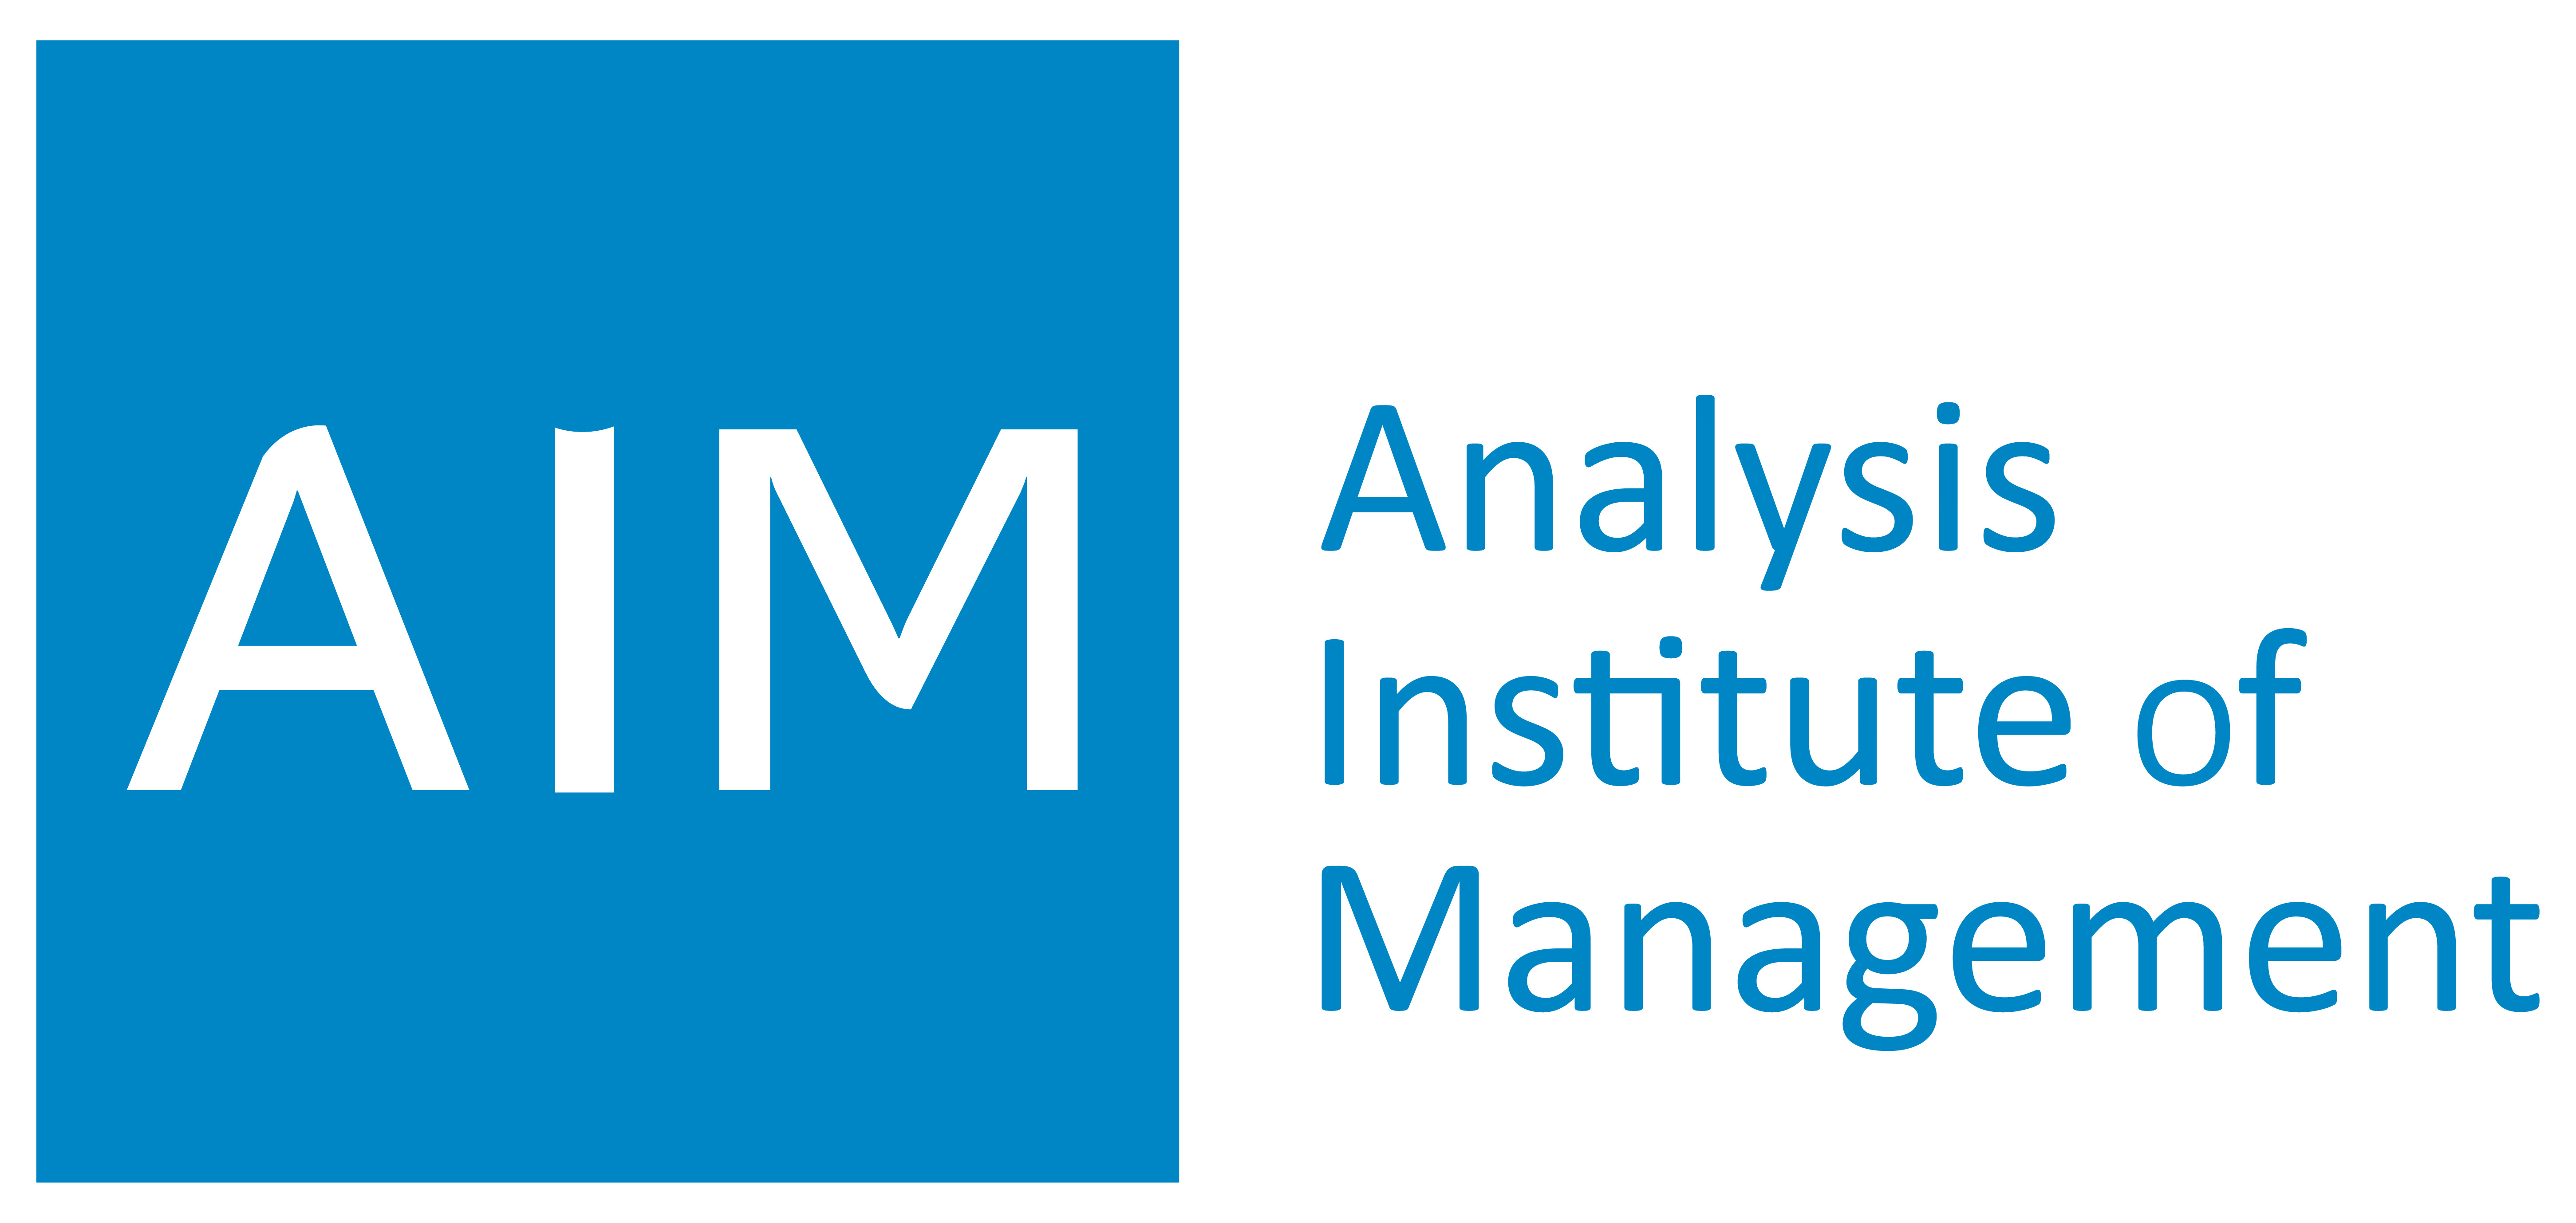 AIM Analysis Institute of Management